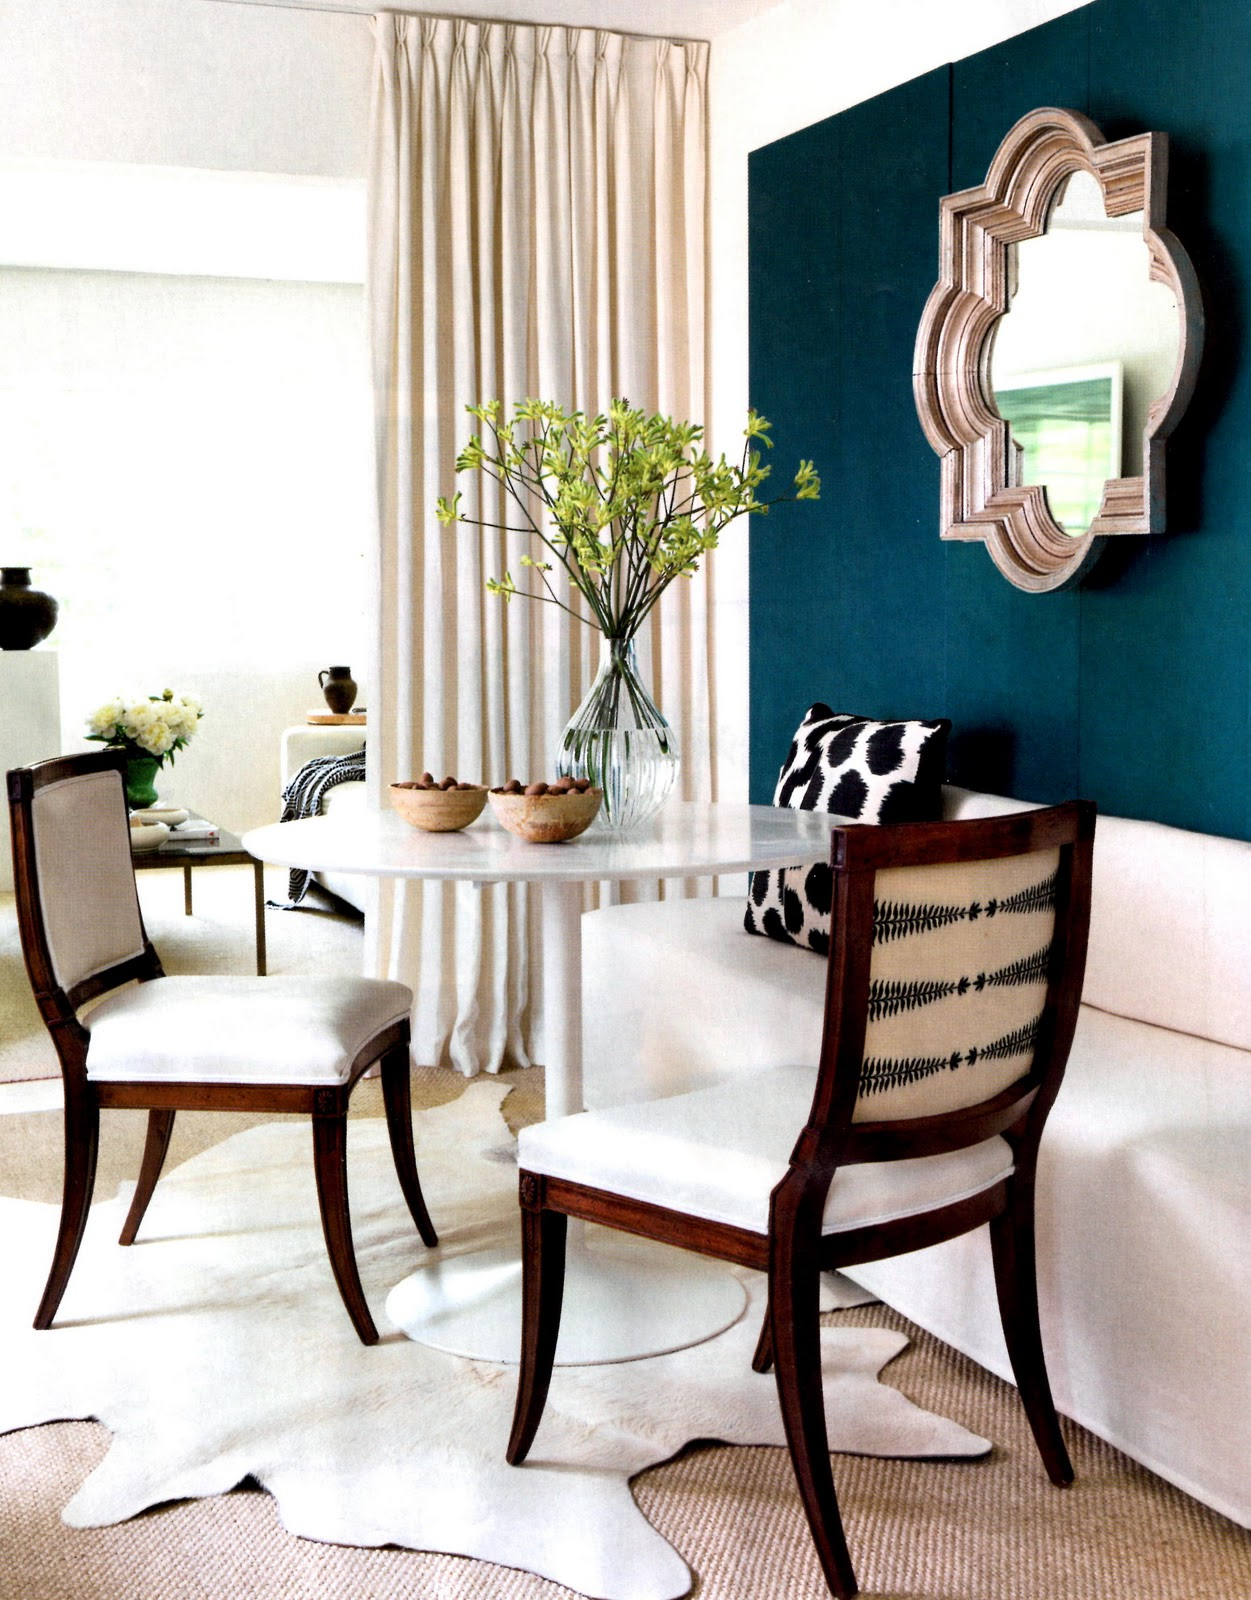 banquette seating gretha scholtz. Black Bedroom Furniture Sets. Home Design Ideas